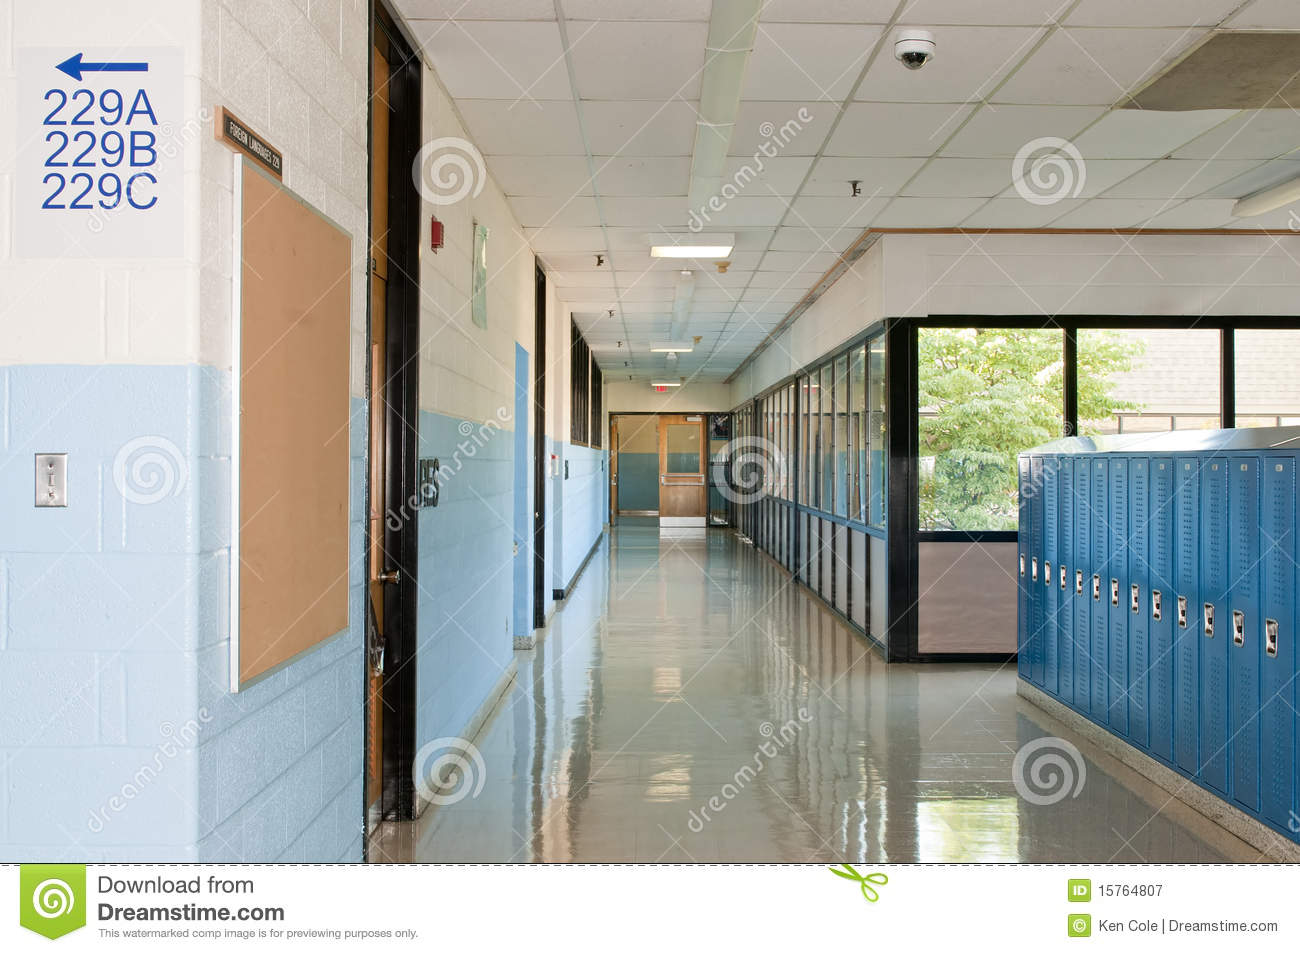 middle school or high school hallway or corridor with student lockers